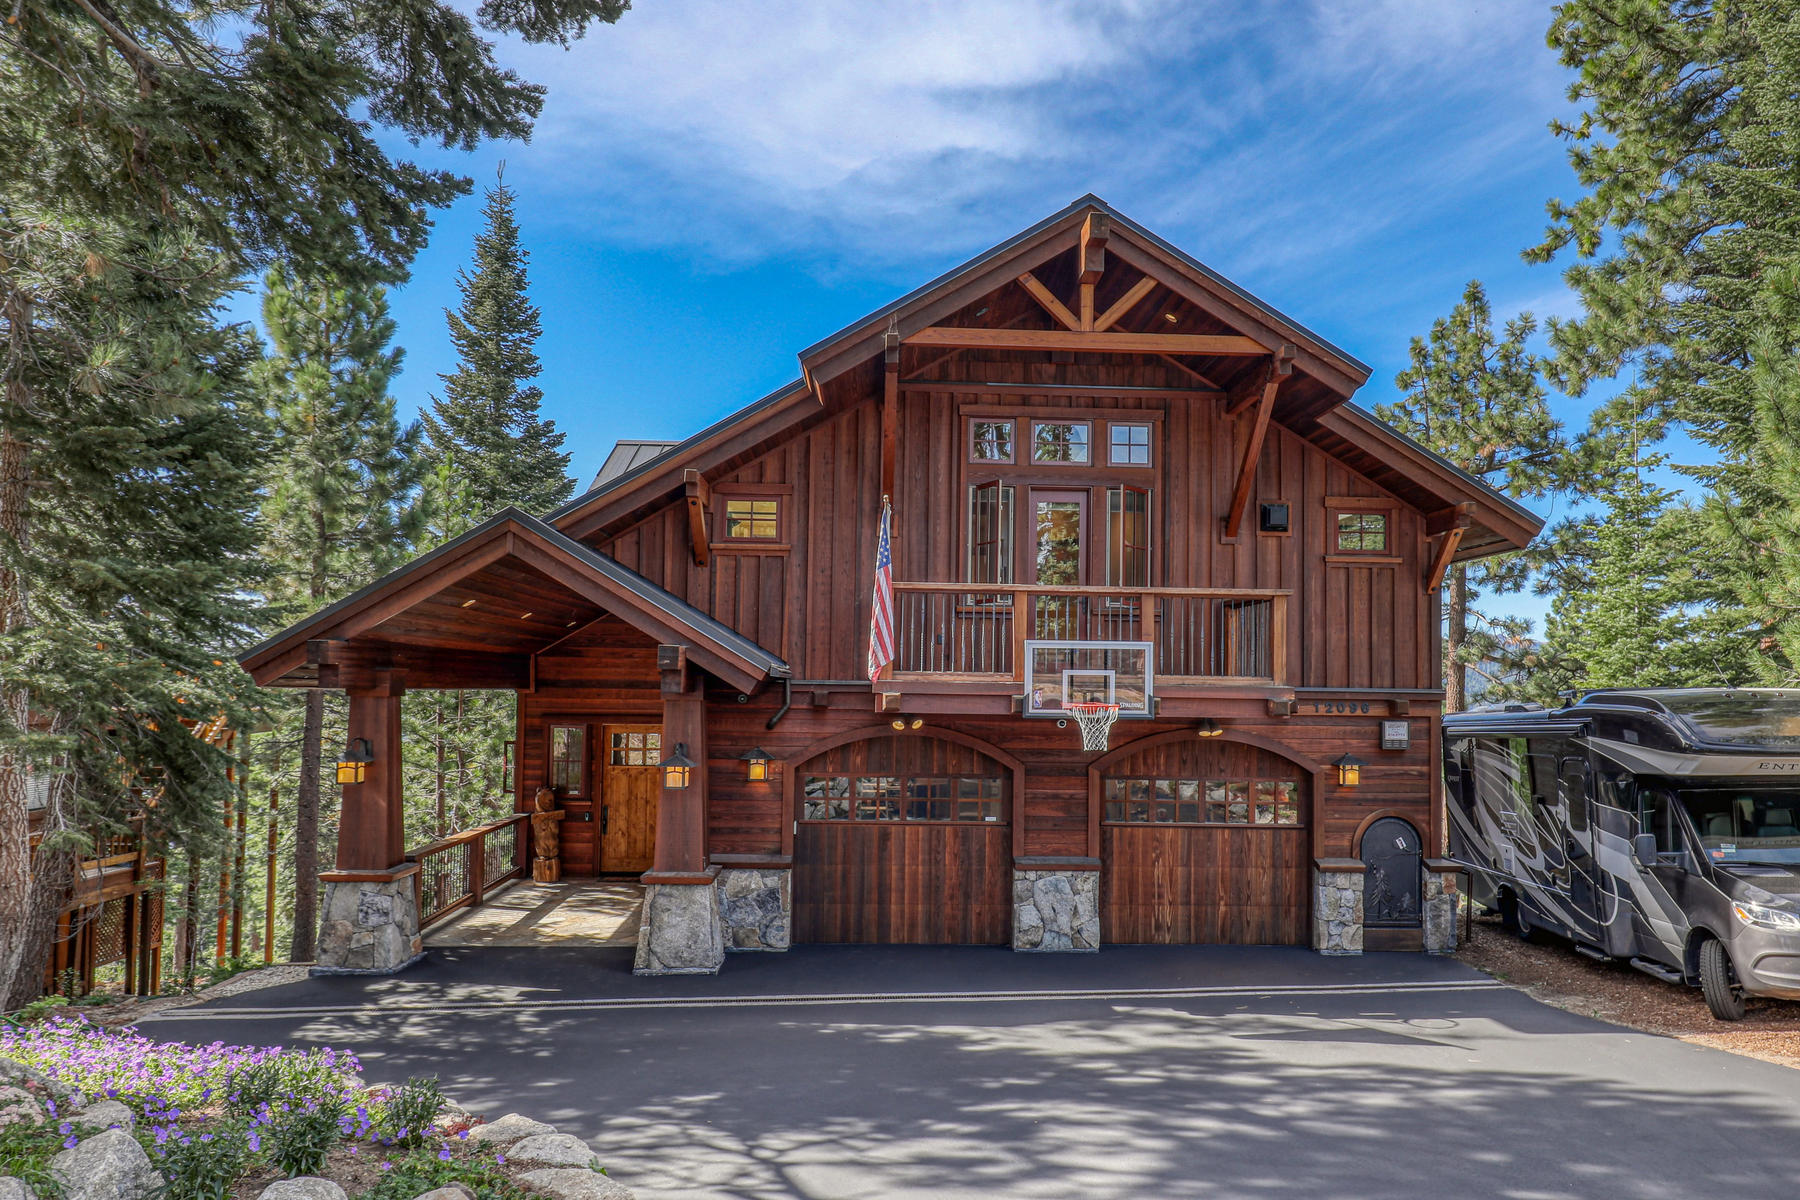 Single Family Homes for Active at Spectacular Donner Lake views 12096 Skislope Way Truckee, California 96161 United States